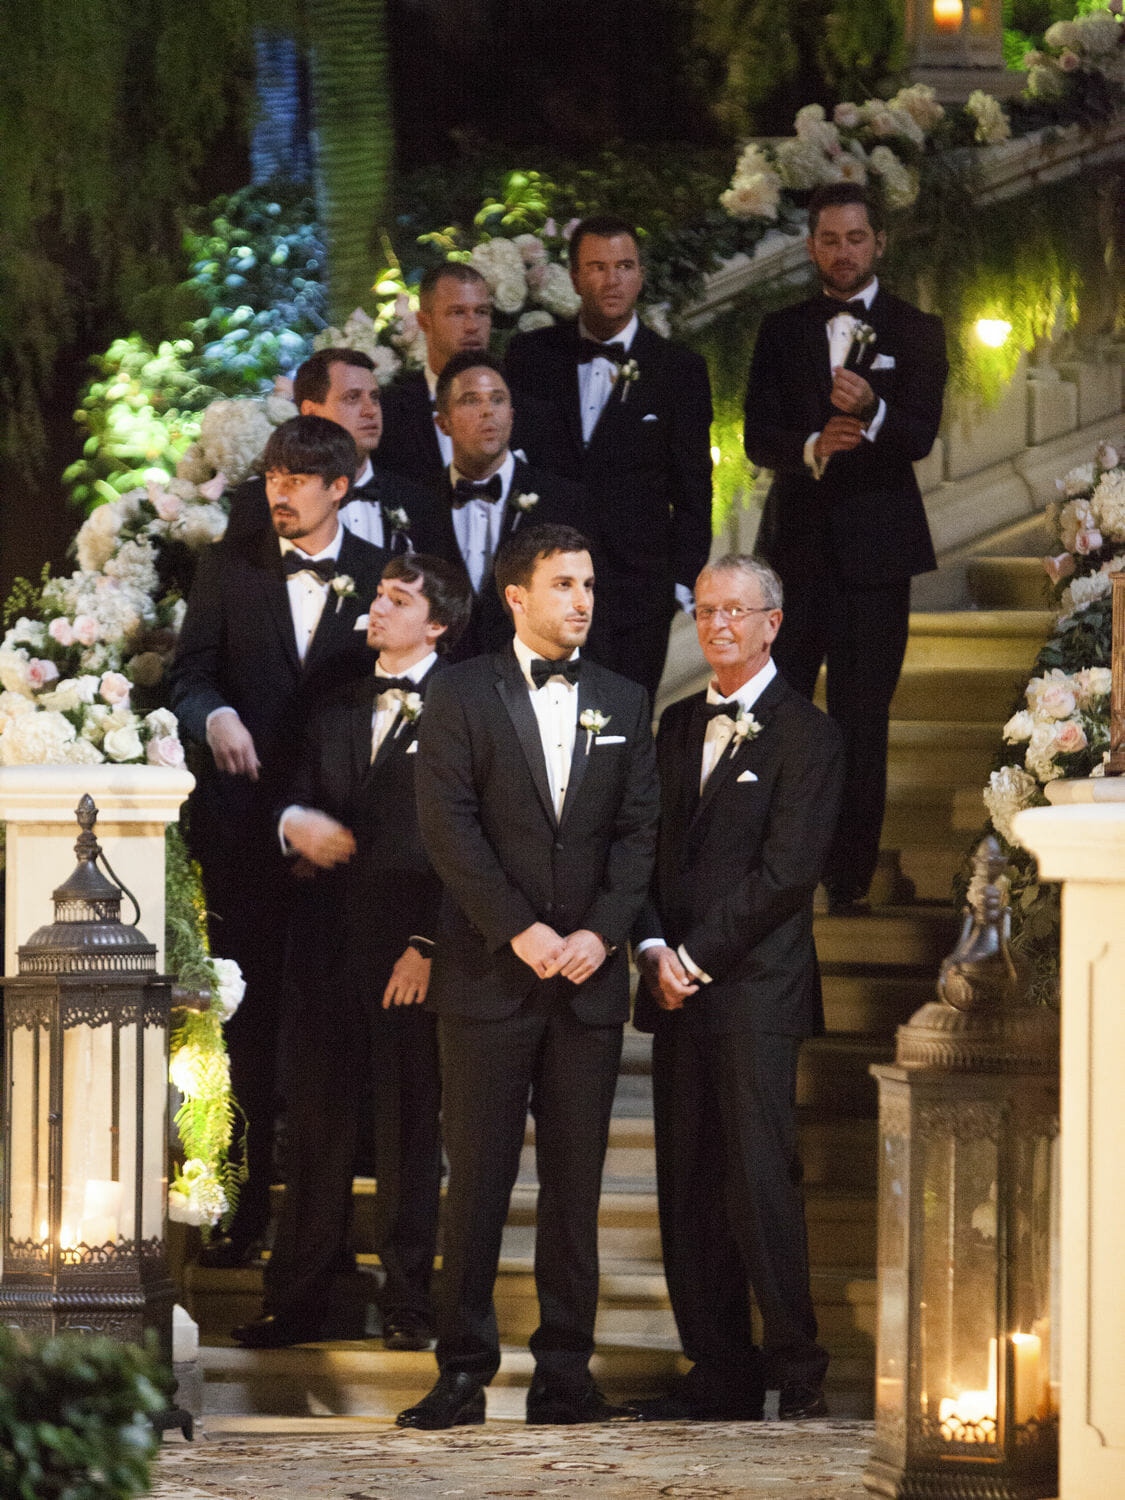 wedding-bachelor-abc-jade-roper-tanner-tolbert-johnandjoseph142